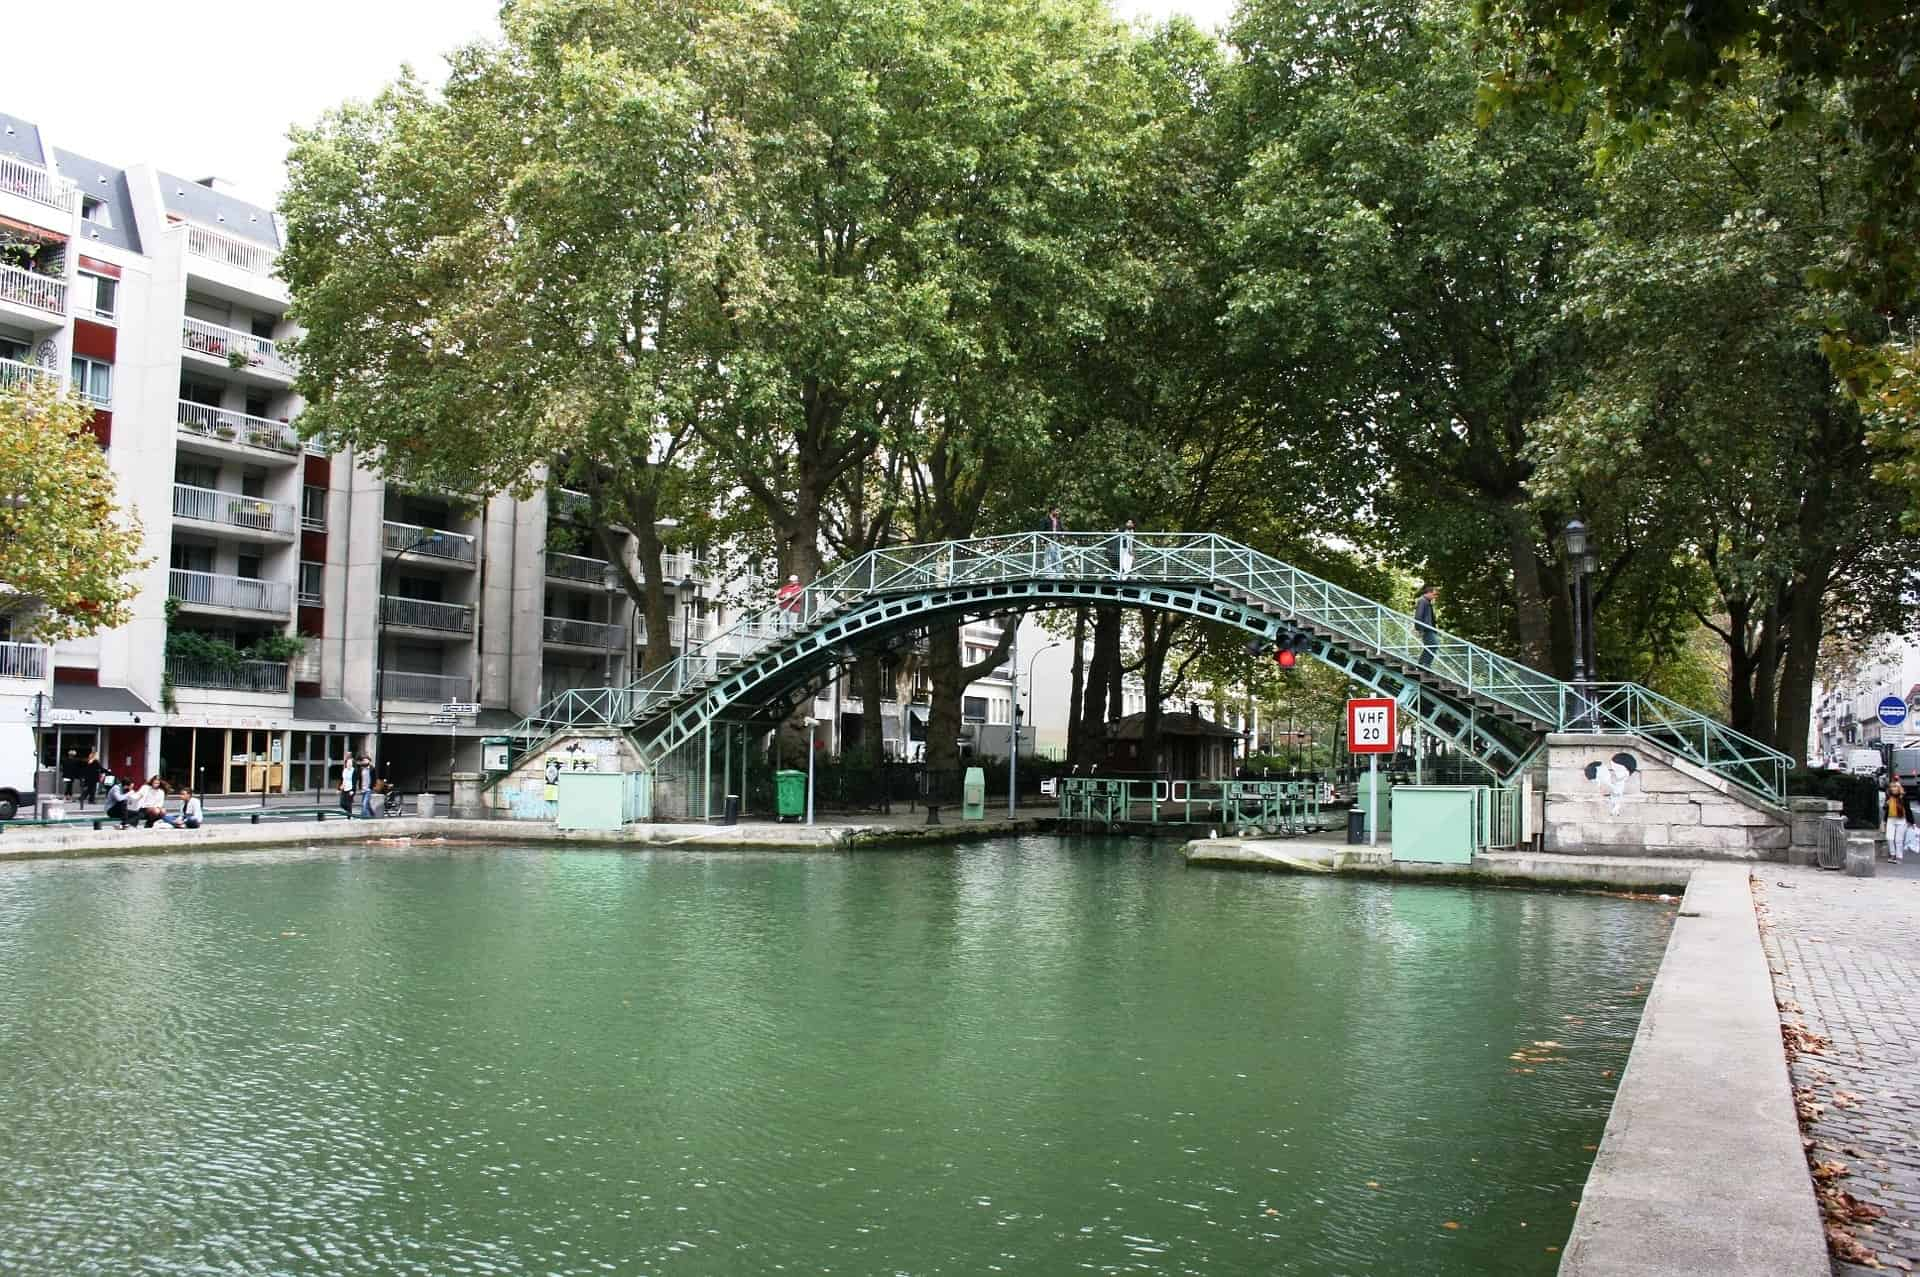 Paris hidden treasure: The Canal St. Martin in the North east of Paris belongs to the rather hidden things to do in Paris